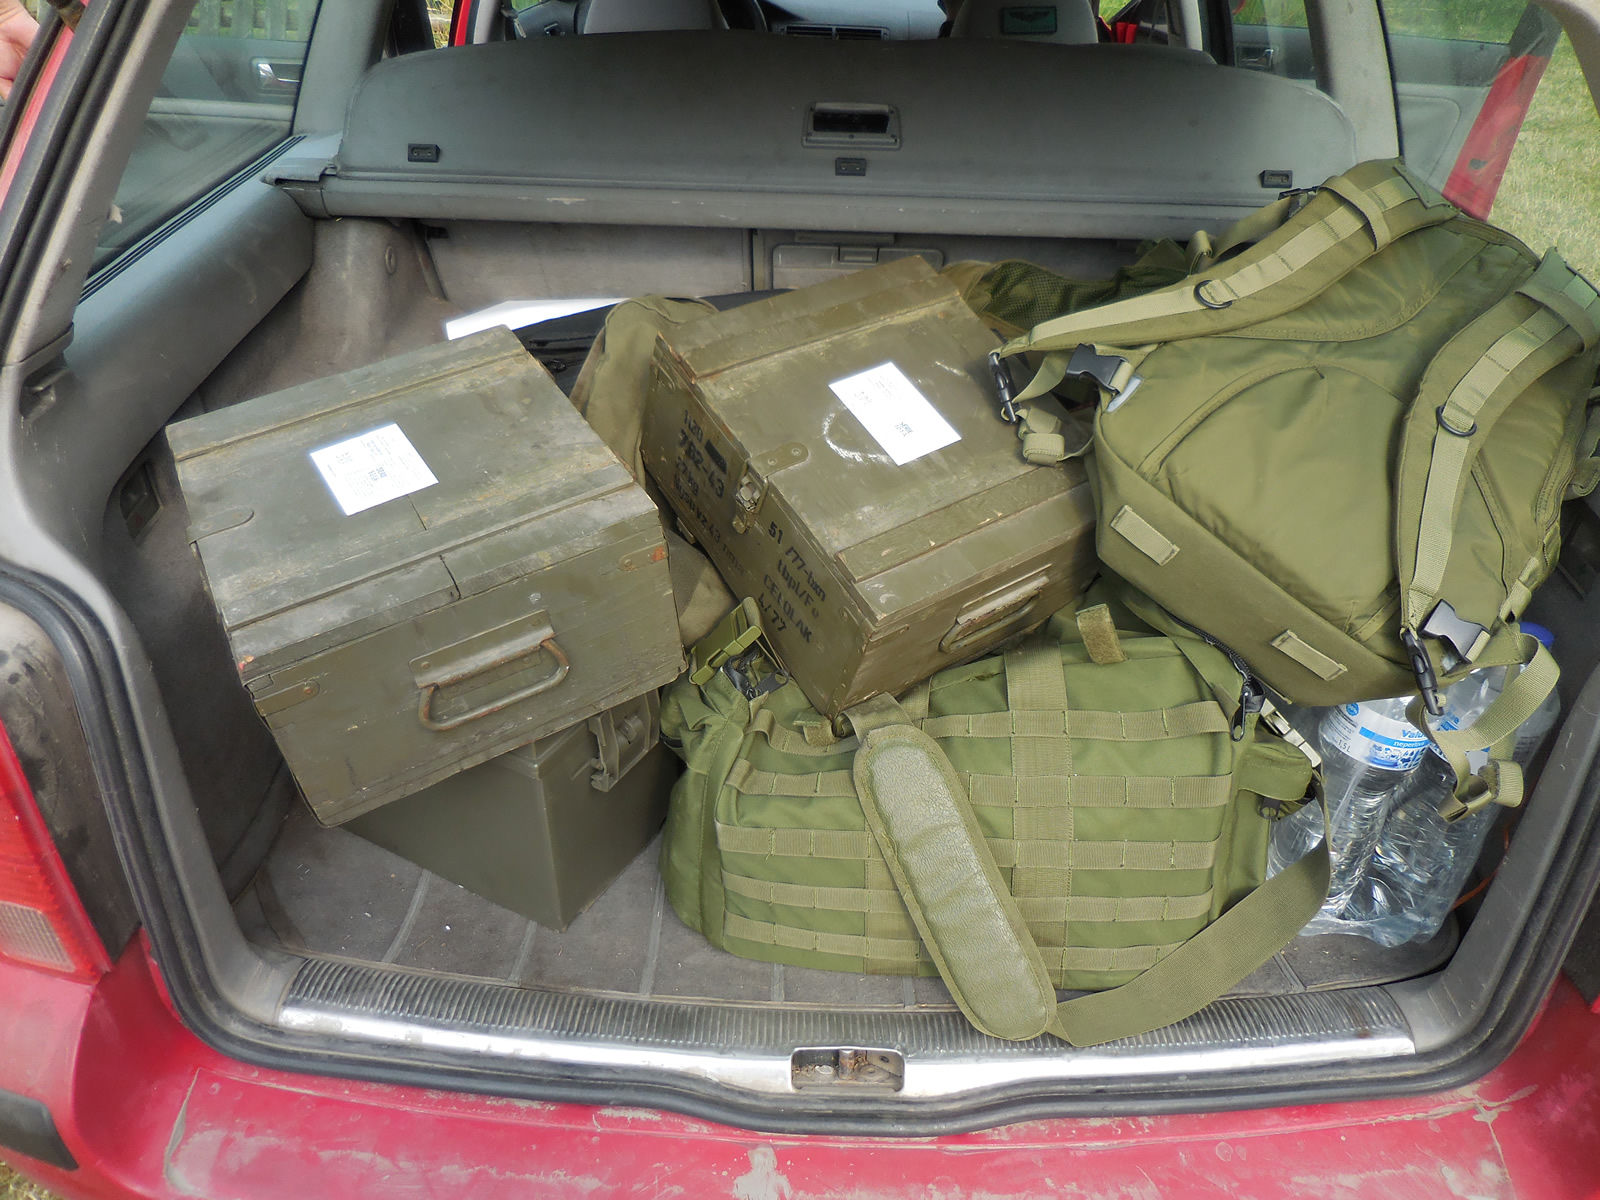 Lots of gear to hump to the range